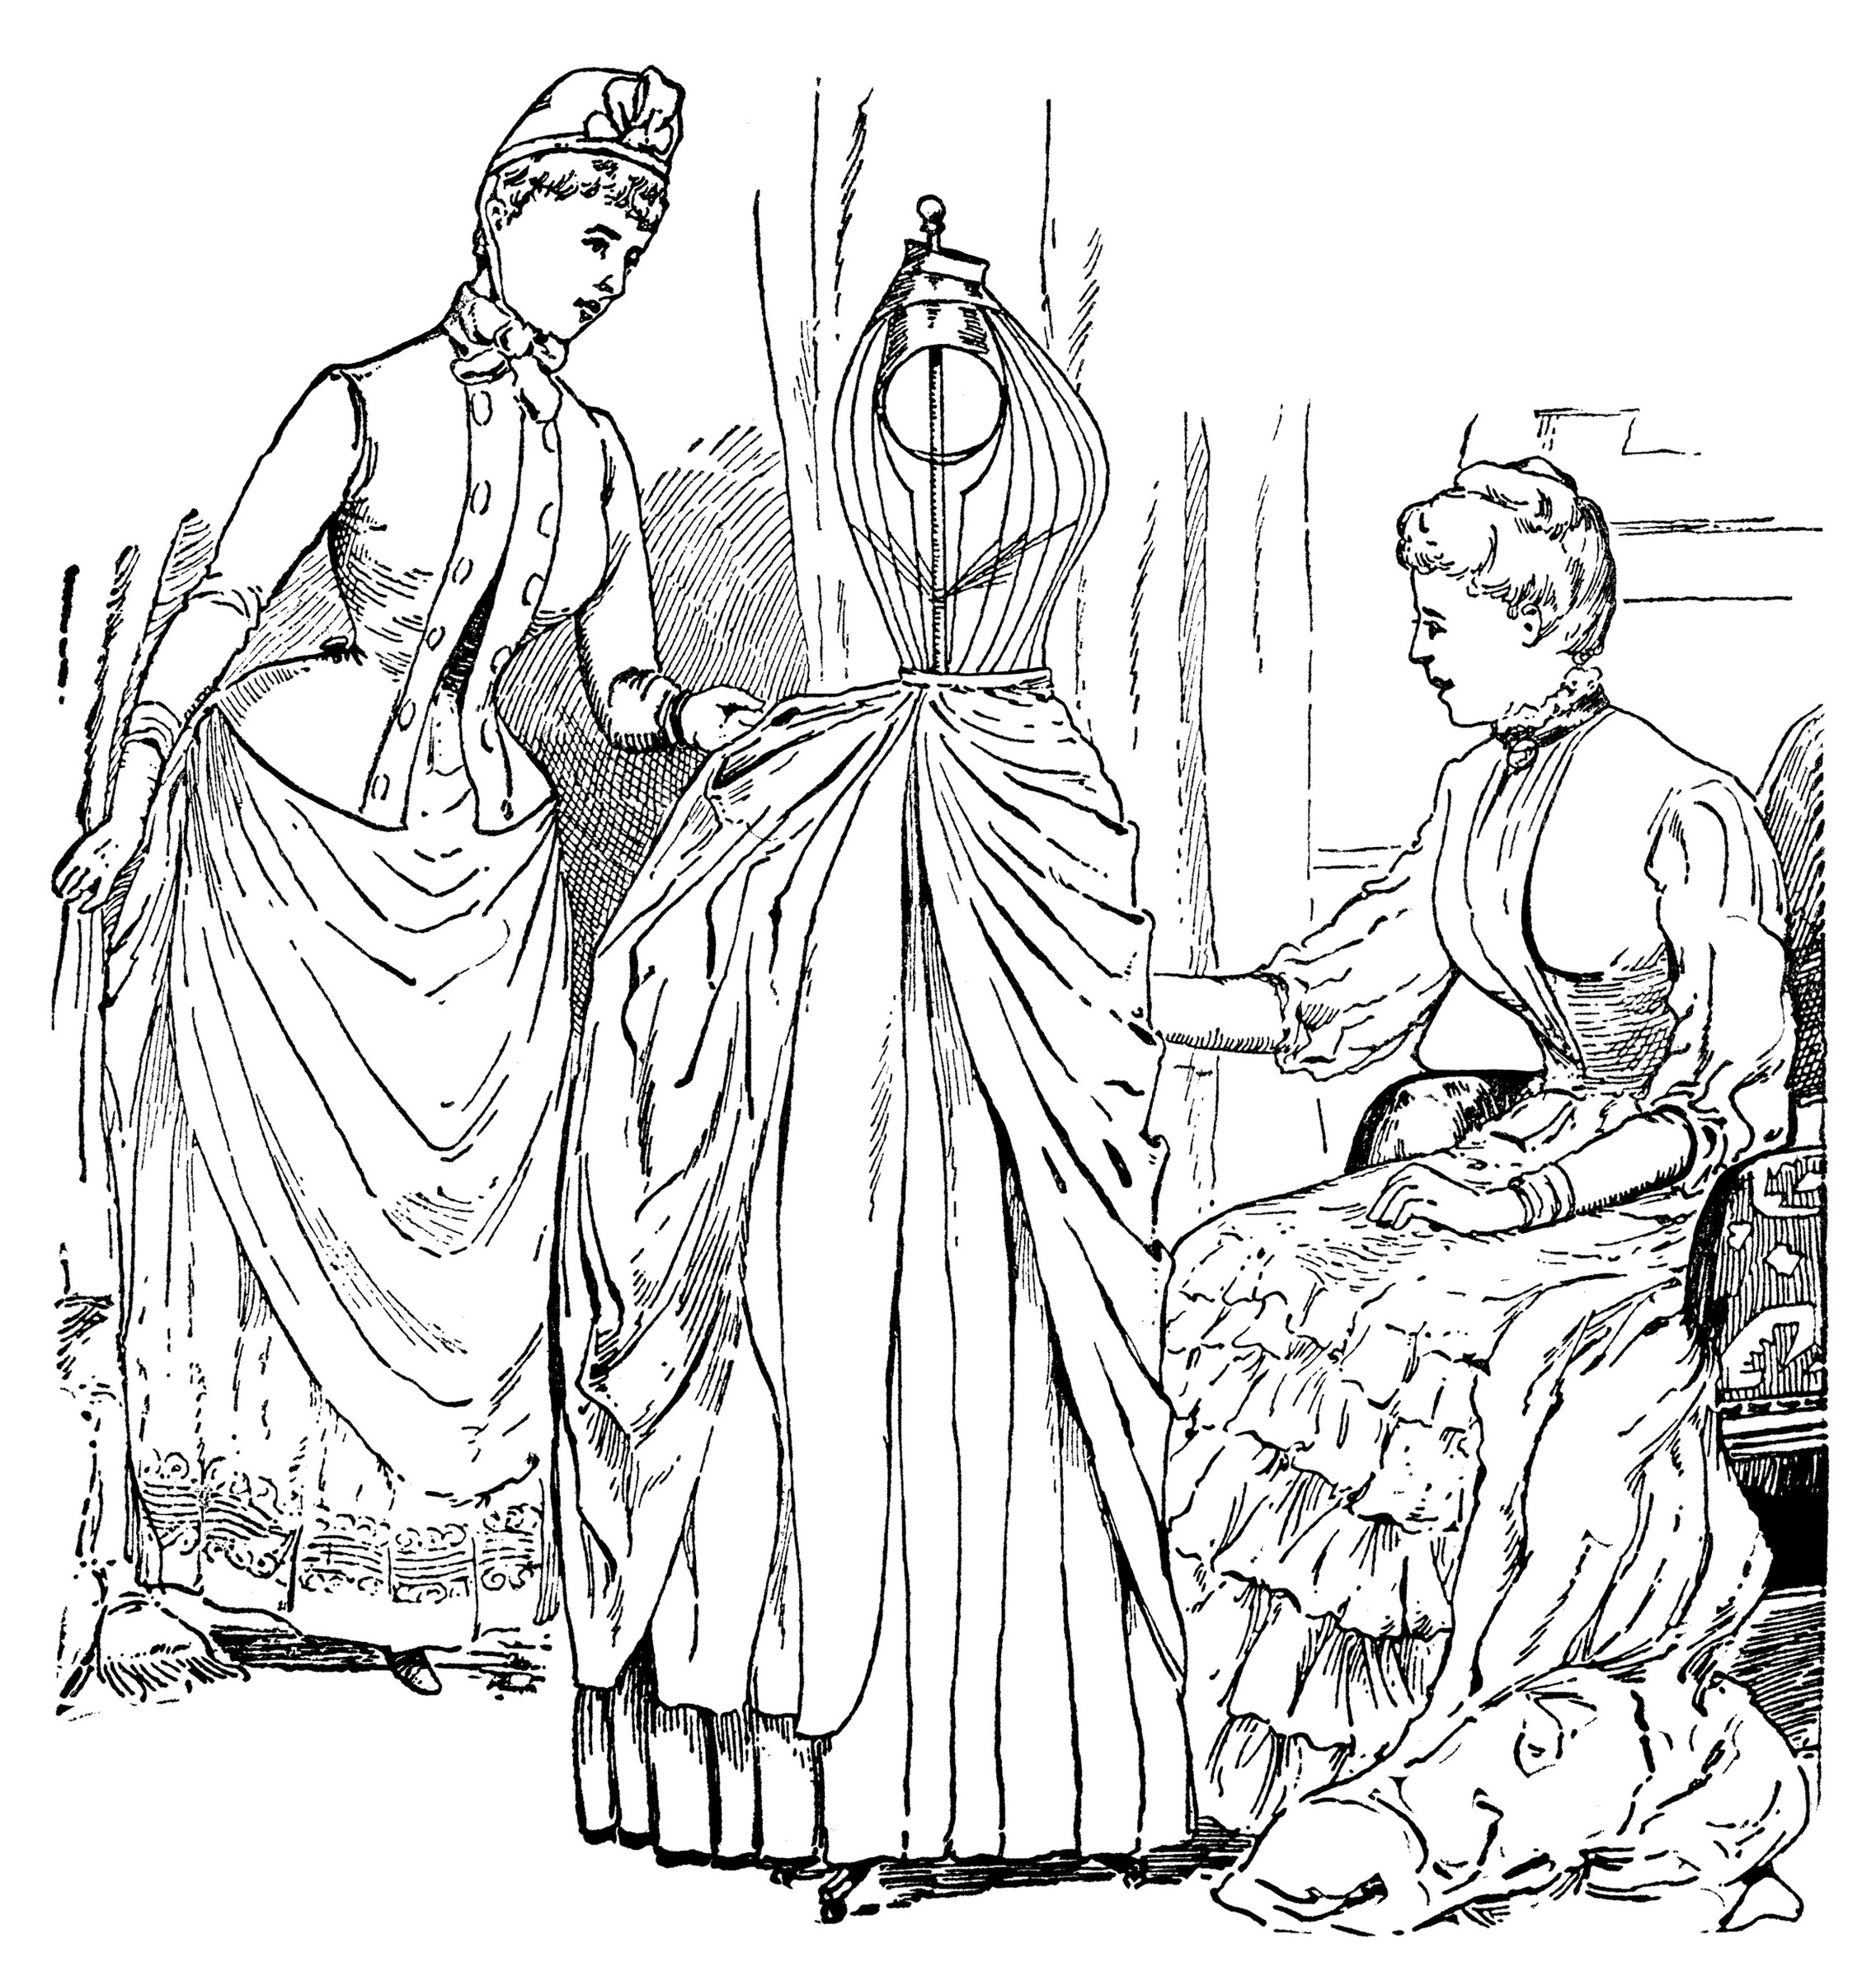 halls bazar dress form, antique magazine ad, vintage sewing clipart, free black and white clip art, victorian ladies illustration